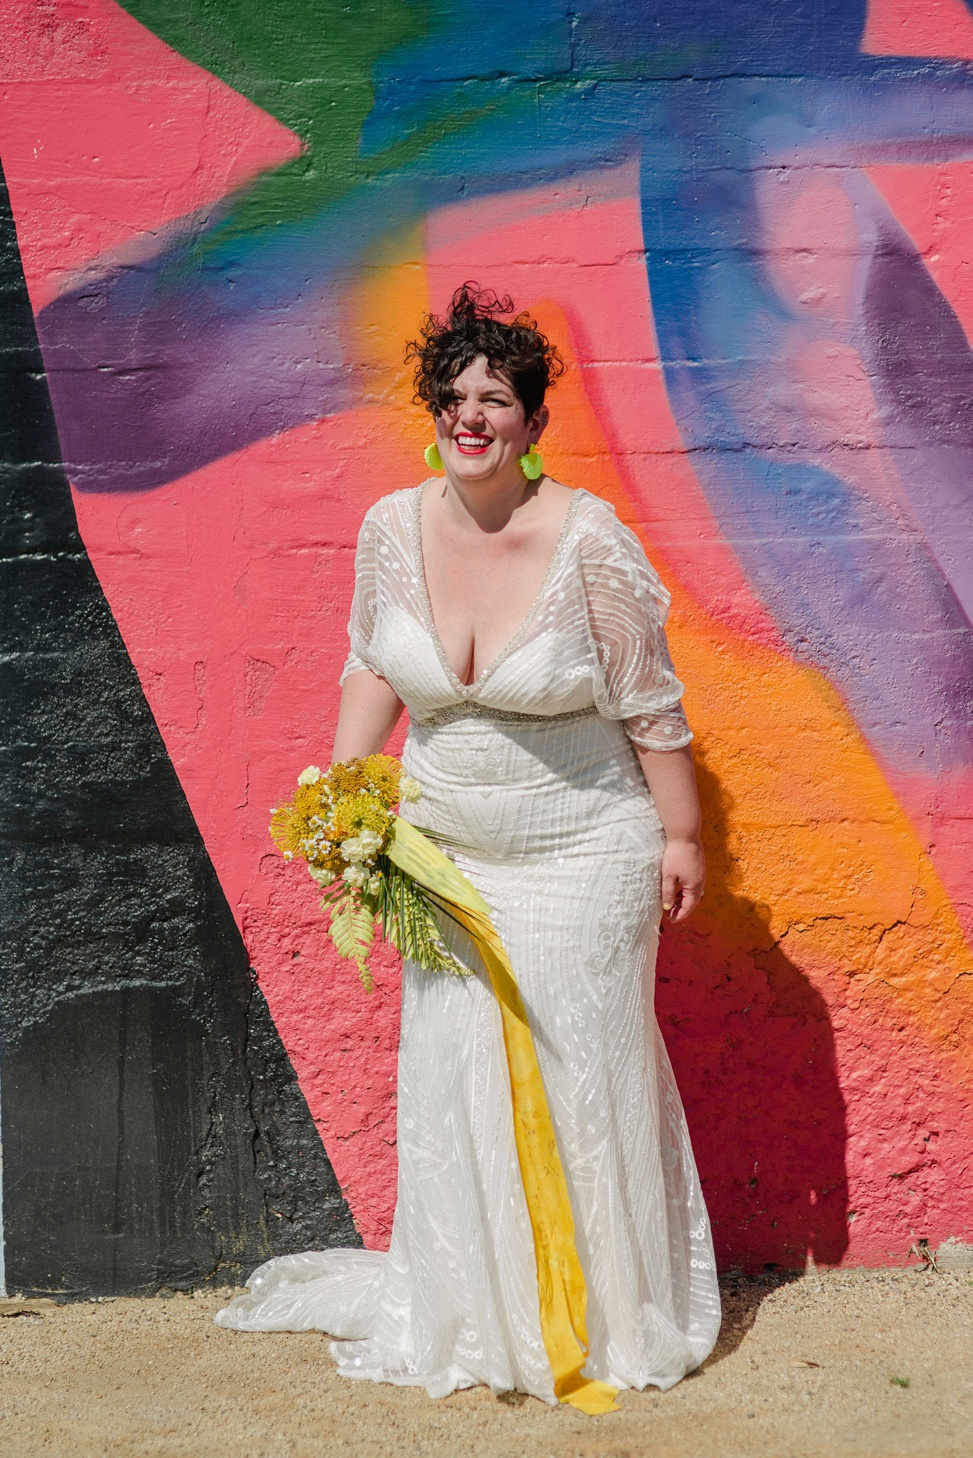 a plus size bride laughing against a bright mural wearing a madison james gown and holding a bright yellow bouquet with flowing yellow ribbon and wearing yellow fringe earrings